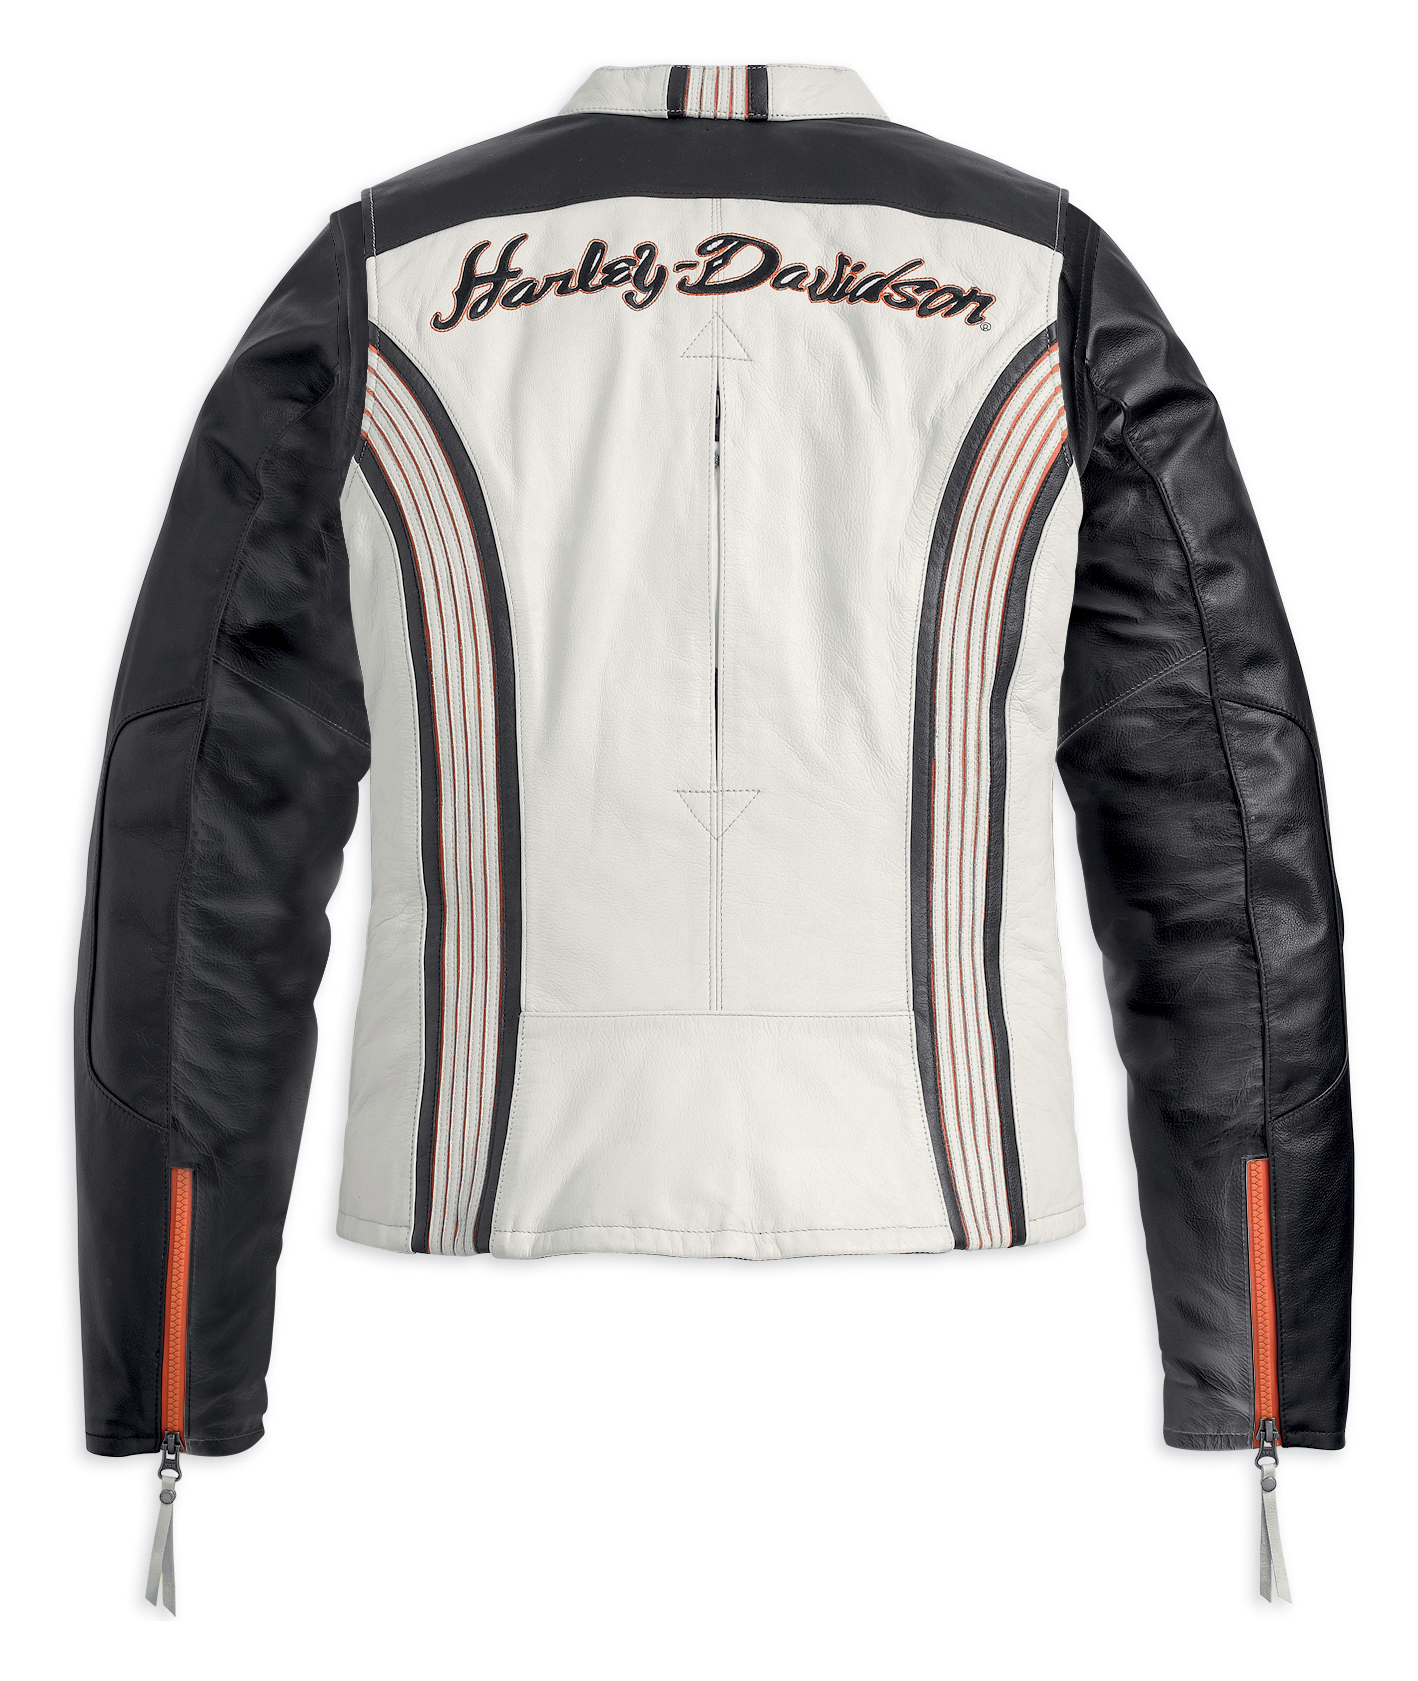 97165-13VW - Harley-Davidson® Womens Chase Lightweight Waterproof ...